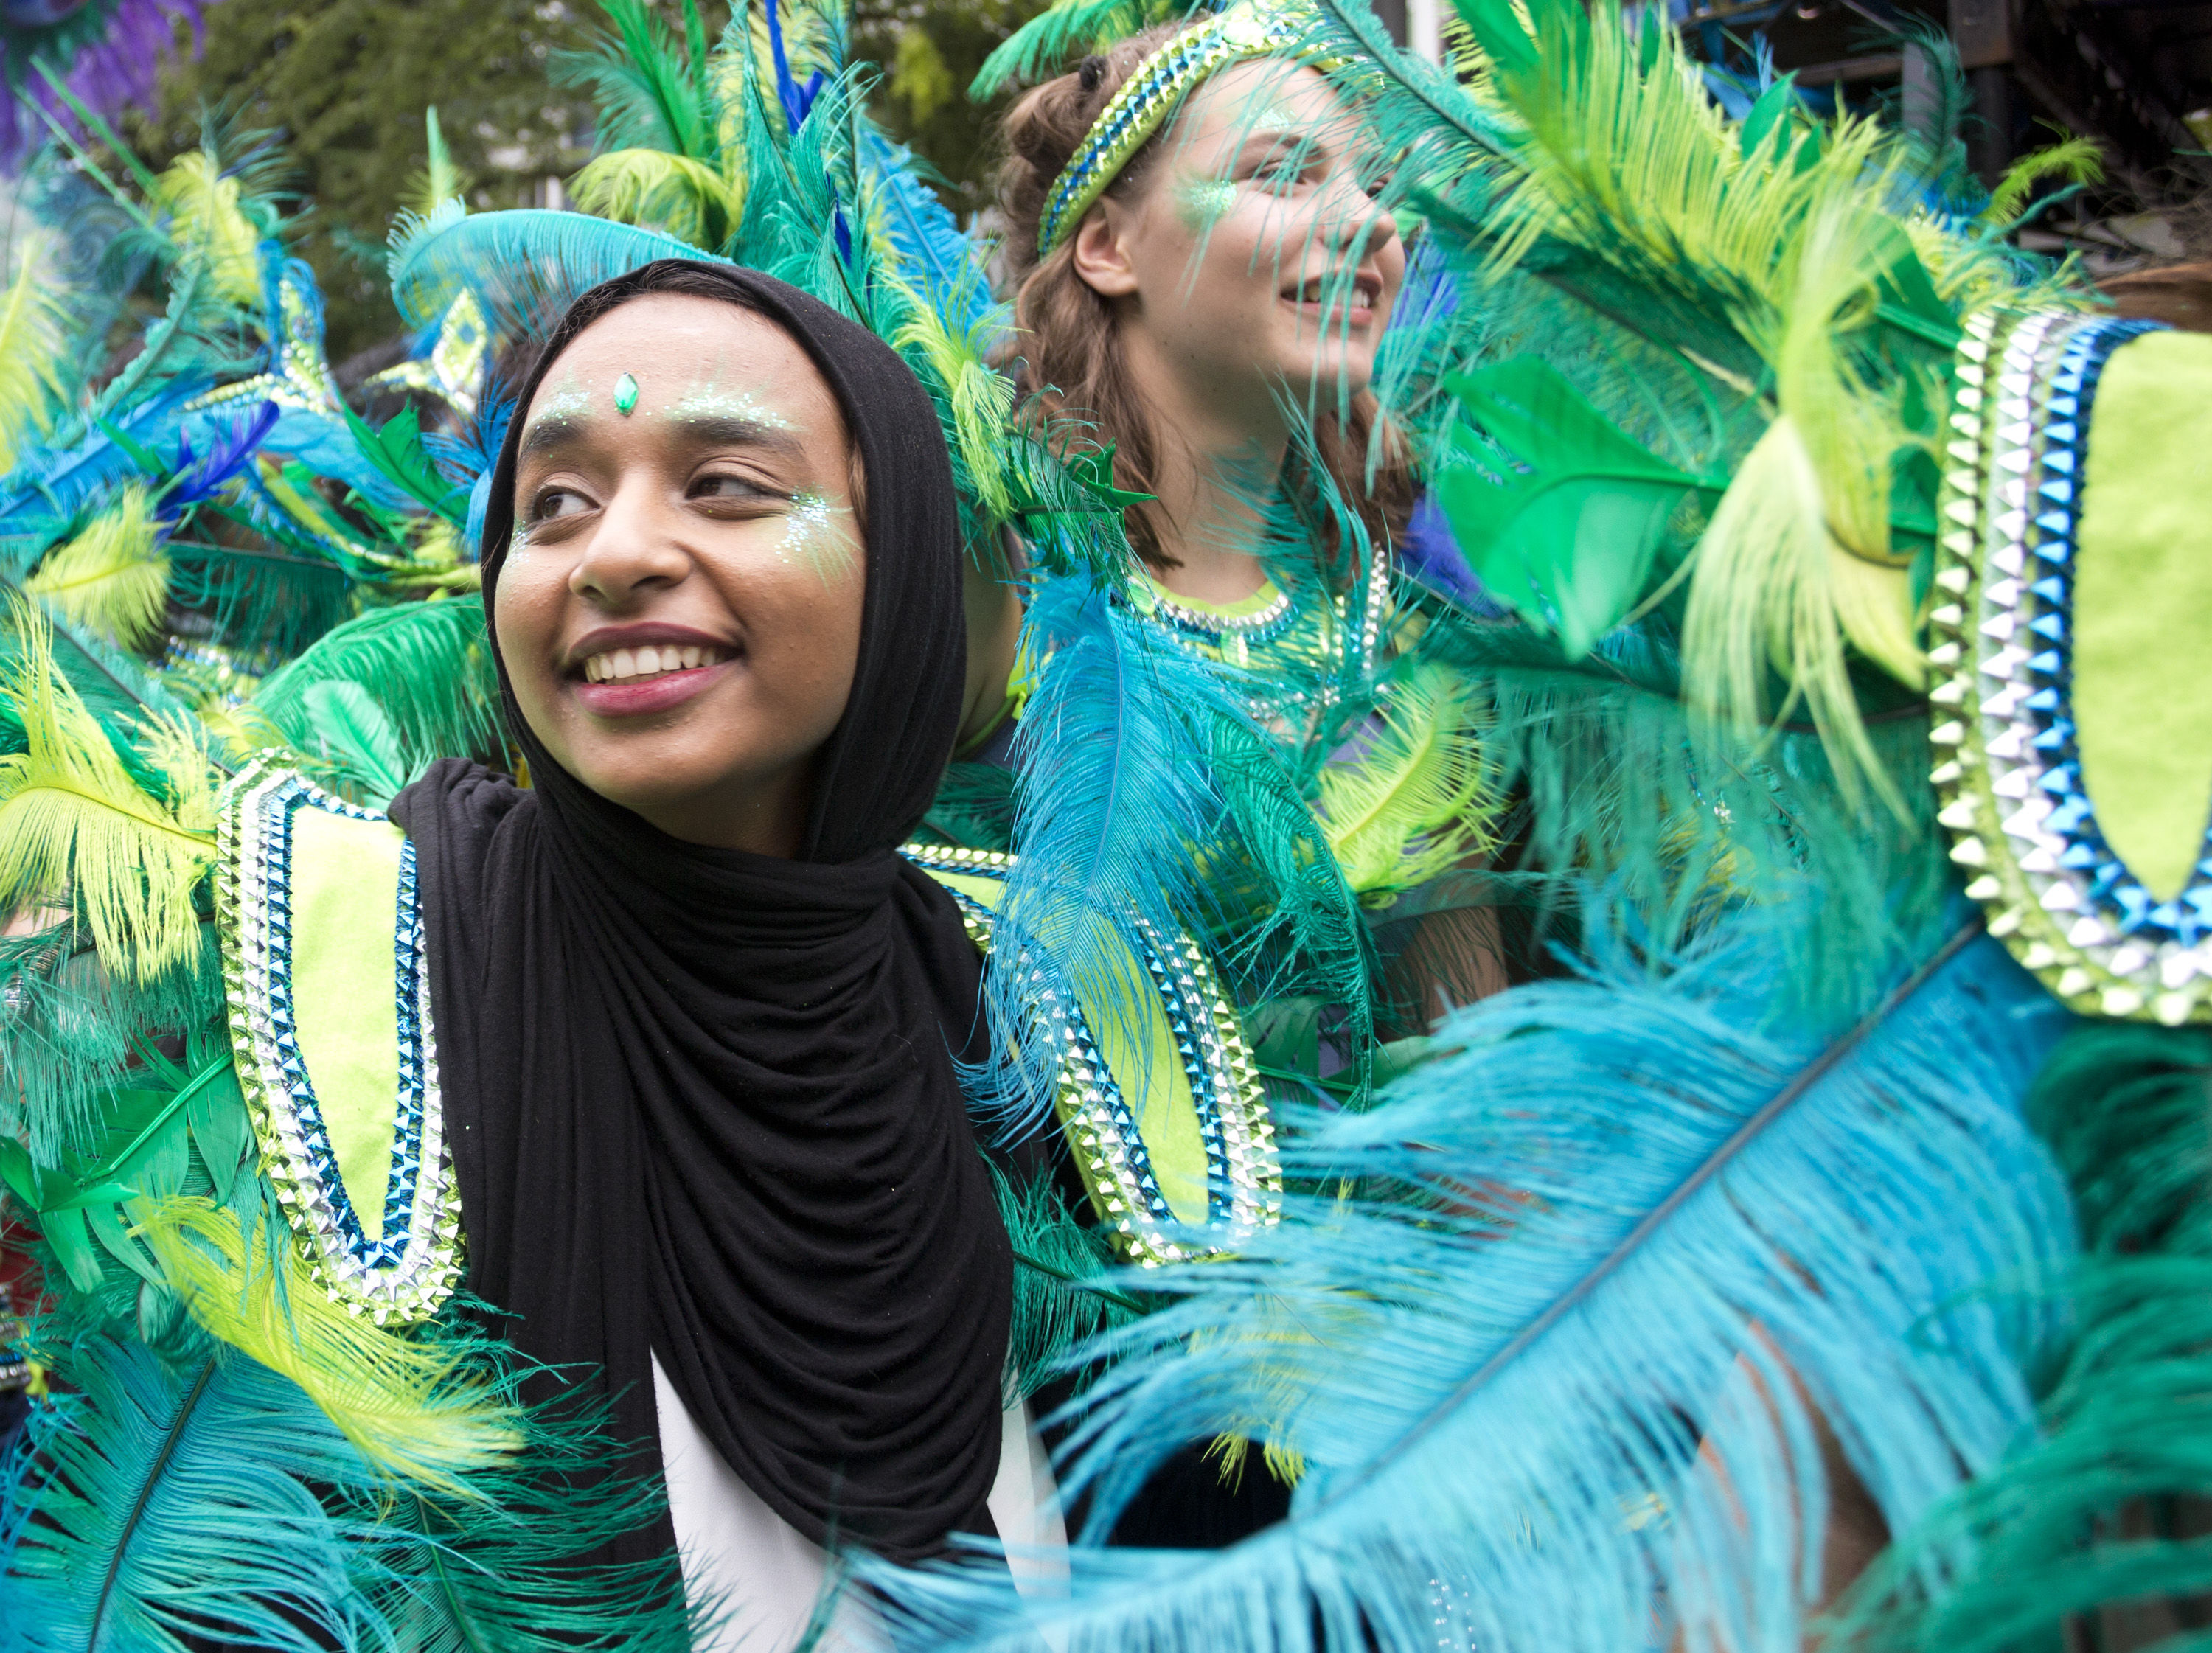 More than 100 arrested, dozens hurt at Notting Hill Carnival